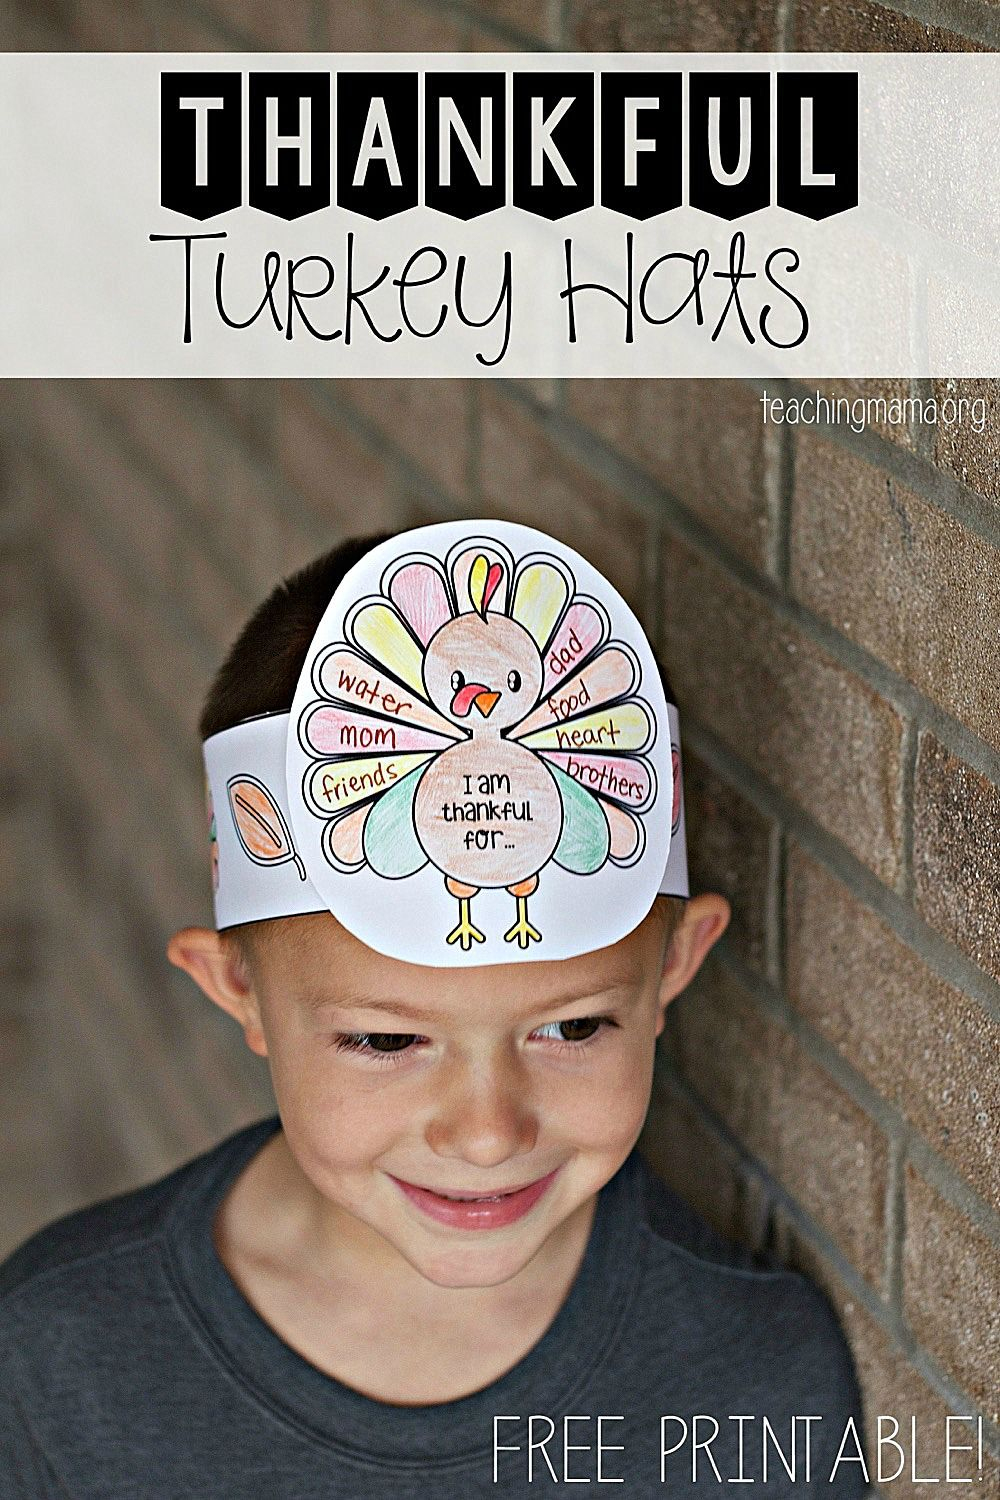 Thankful Turkey Hats | Kidscare Printables & Craft Ideas | Pinterest - Free Printable Thanksgiving Hats